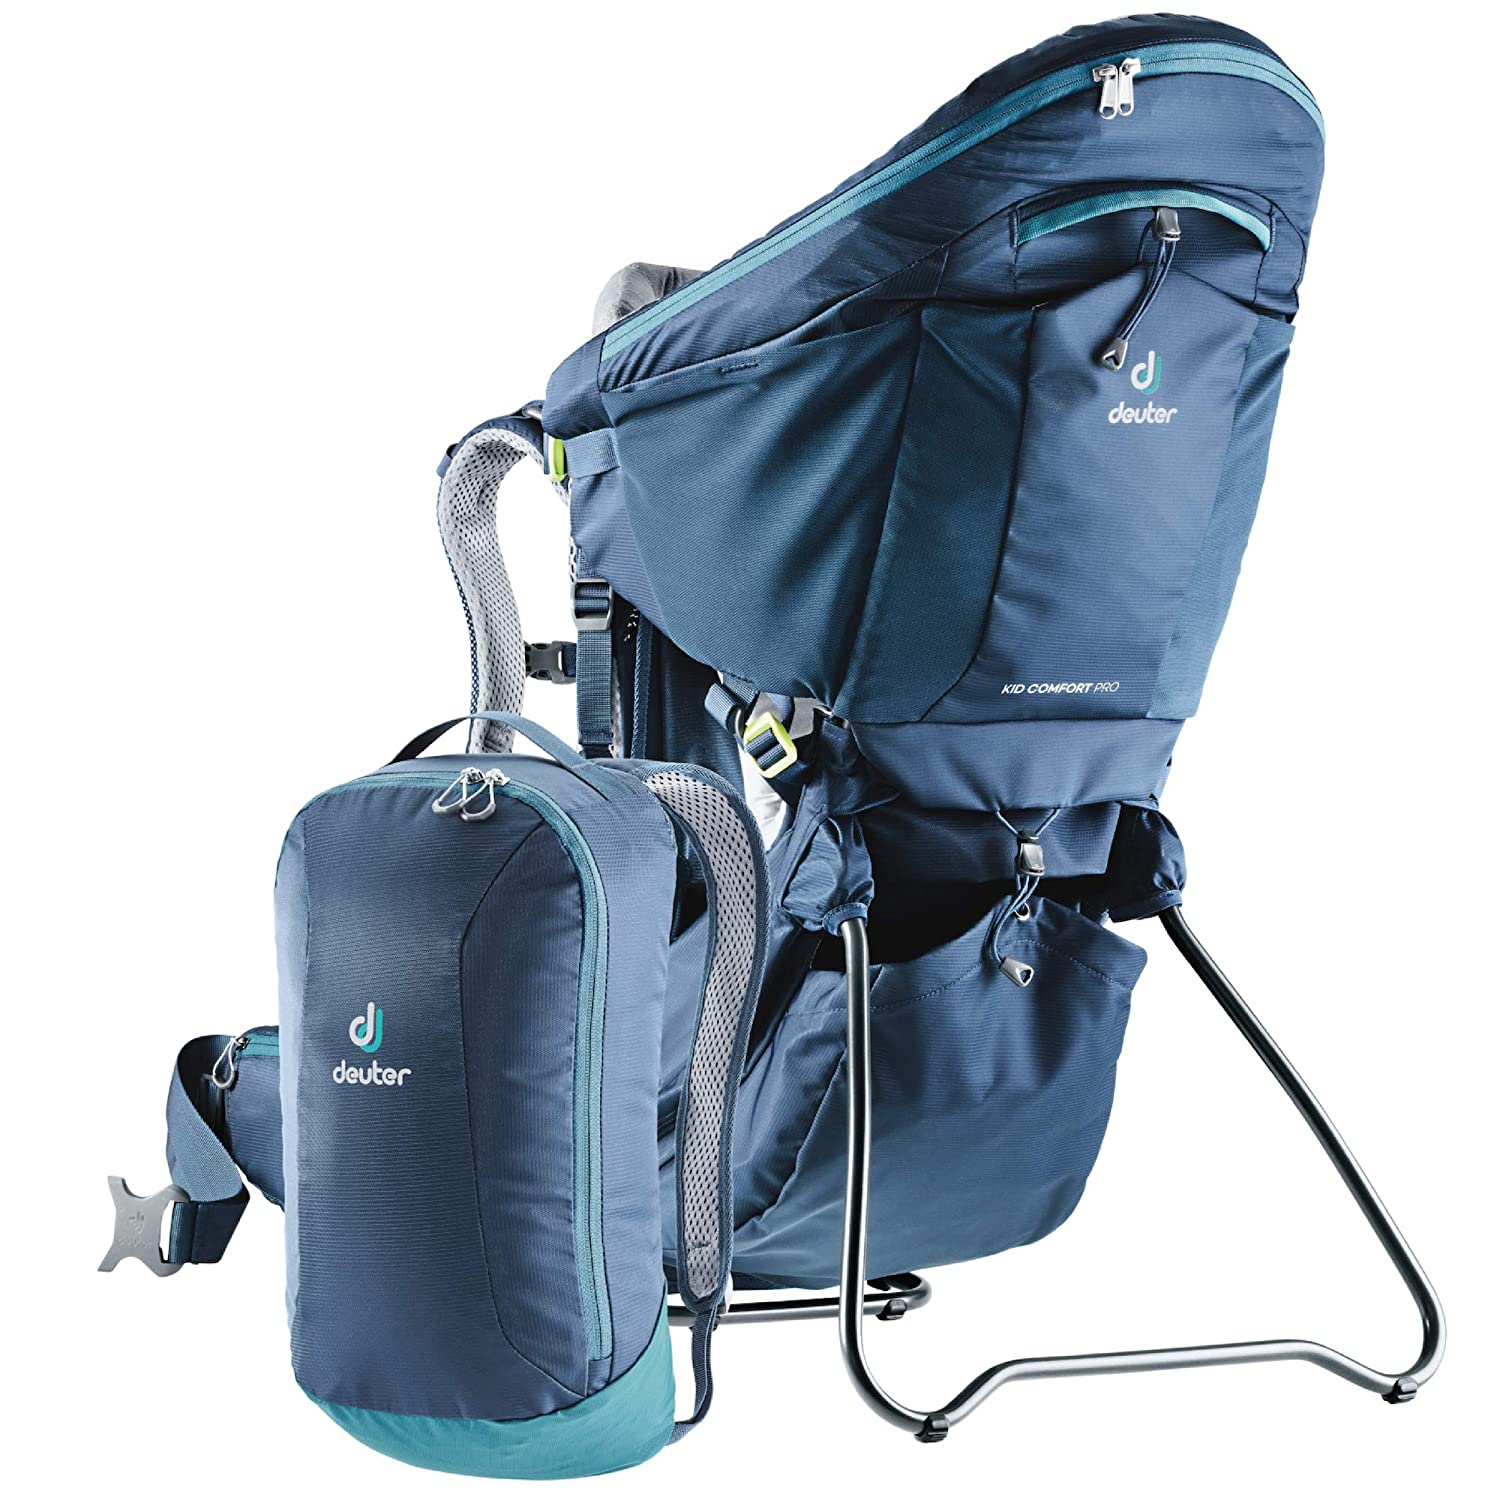 Deuter Kid Comfort Pro – Child Carrier Backpack